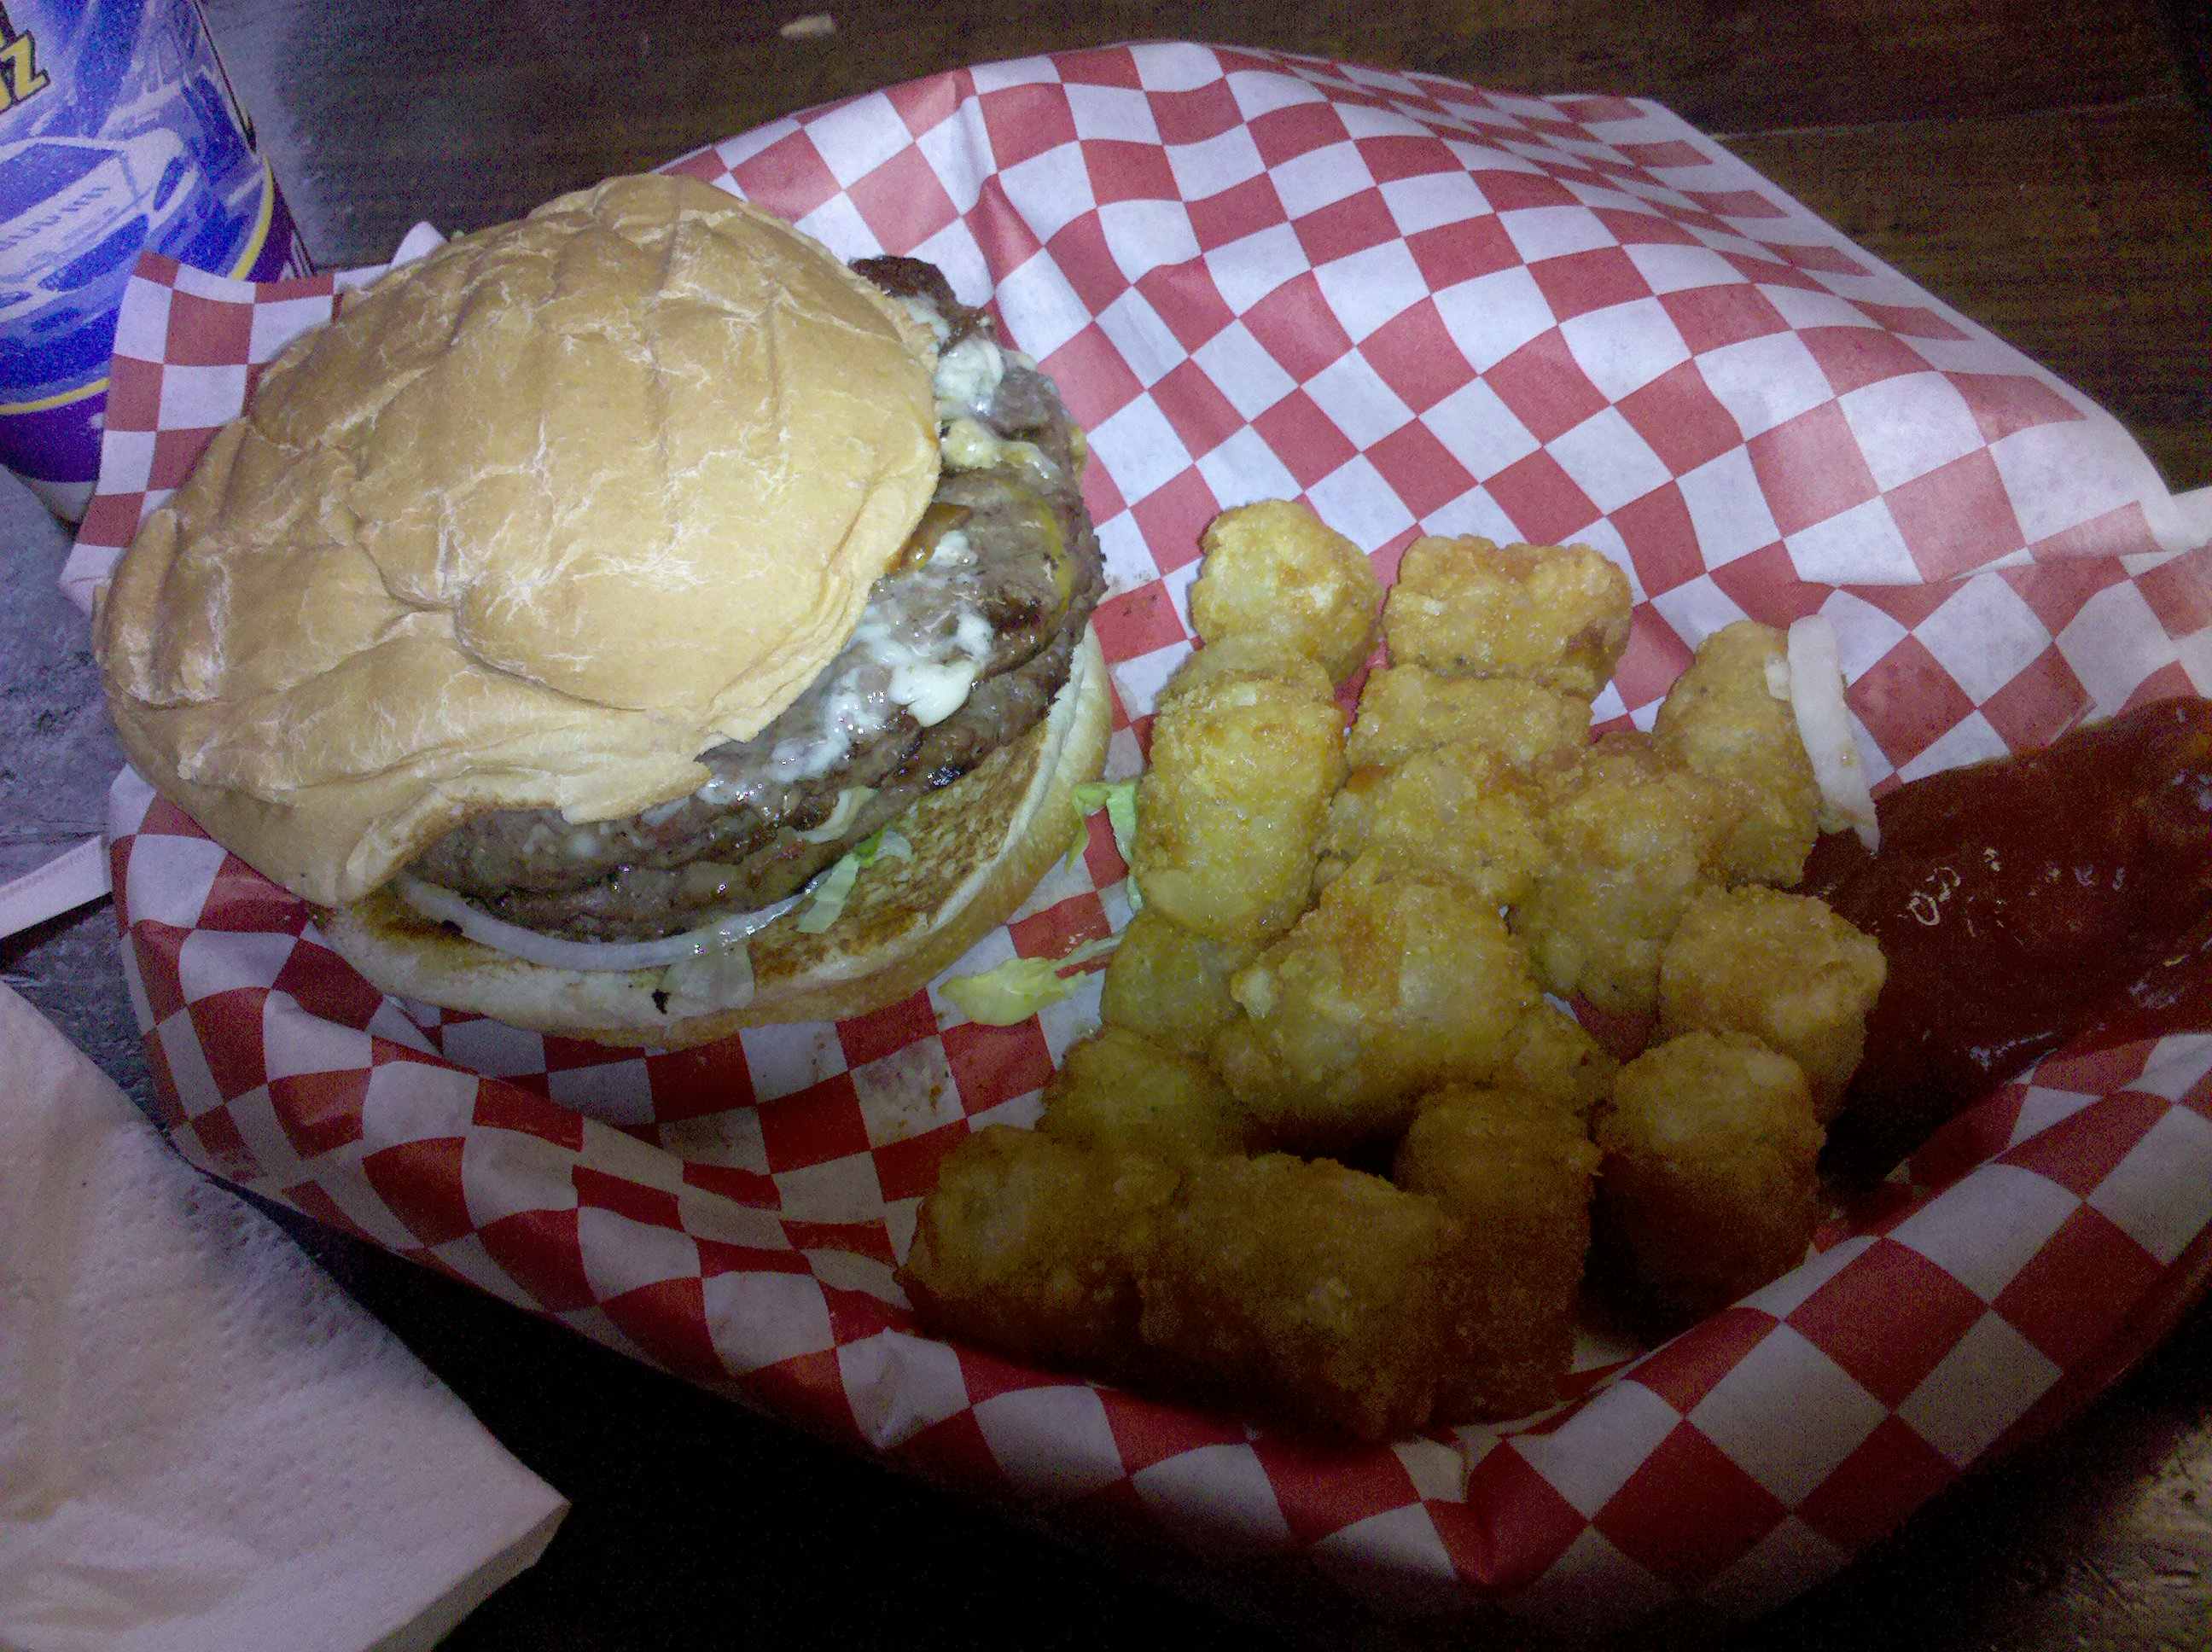 IttyBittyBurgerBarn Houston Tx :: BlueCheese and Bacon Burger & Tots. Serious 1/2 lb that doesn't skimp on the Bacon and BlueCheese.